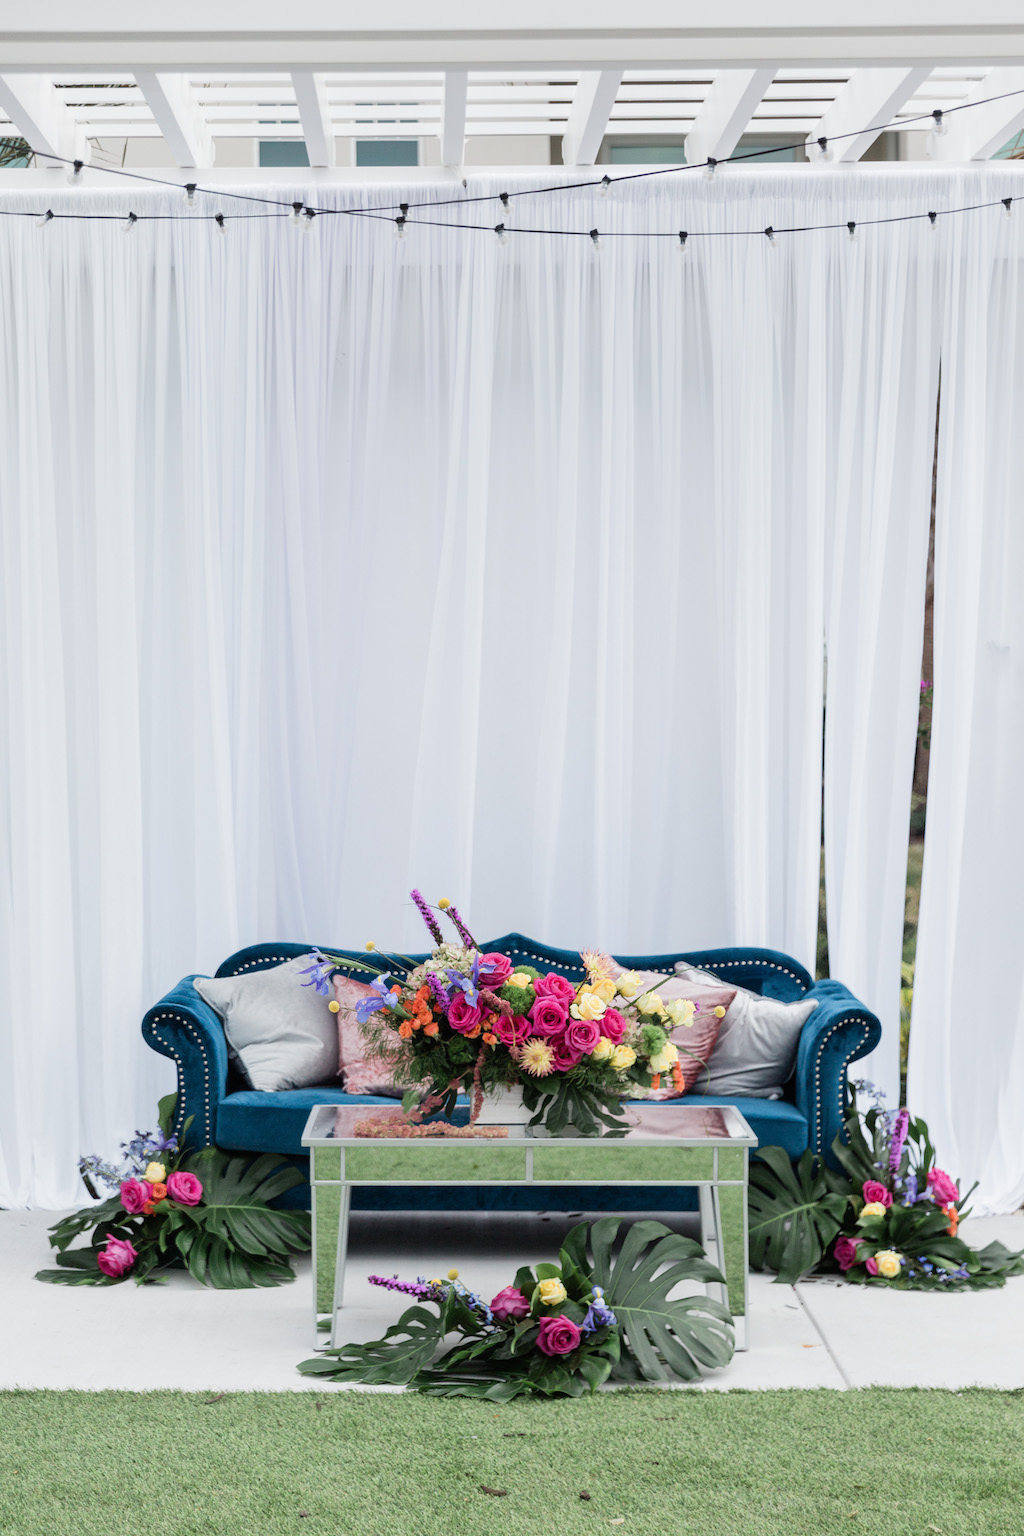 Modern, Tropical Garden Inspired Wedding Decor, Blue Velvet Lounge Seating and Couch, Dusty Rose Gold and Silver Accent Pillows, Mirrored Table, Whimsical Pink, Yellow, Orange, Purple Floral Centerpiece with Green Monstera Leaves, Against White Draping with Romantic Outdoor String Lighting   Tampa Bay Wedding Planner Special Moments Event Planning   Tampa Bay Wedding Florist Gabro Event Services